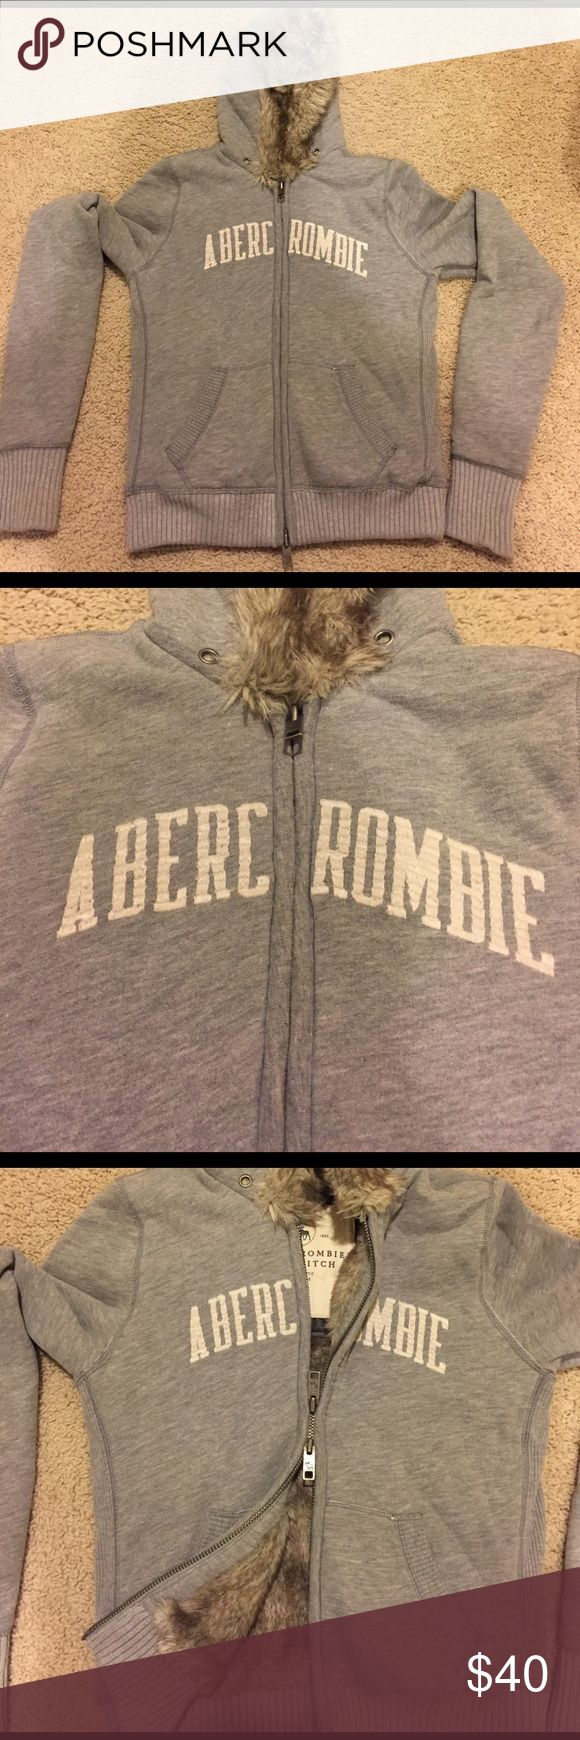 Great condition Abercrombie and Fitch jacket Jacket from Abercrombie and Fitch fur jacket. Fur is lined all inside the coat and hood minus the sleeves. Only thing missing is drawstrings at hood. In great condition and great for the cold days. Size large fits a medium Abercrombie & Fitch Jackets & Coats